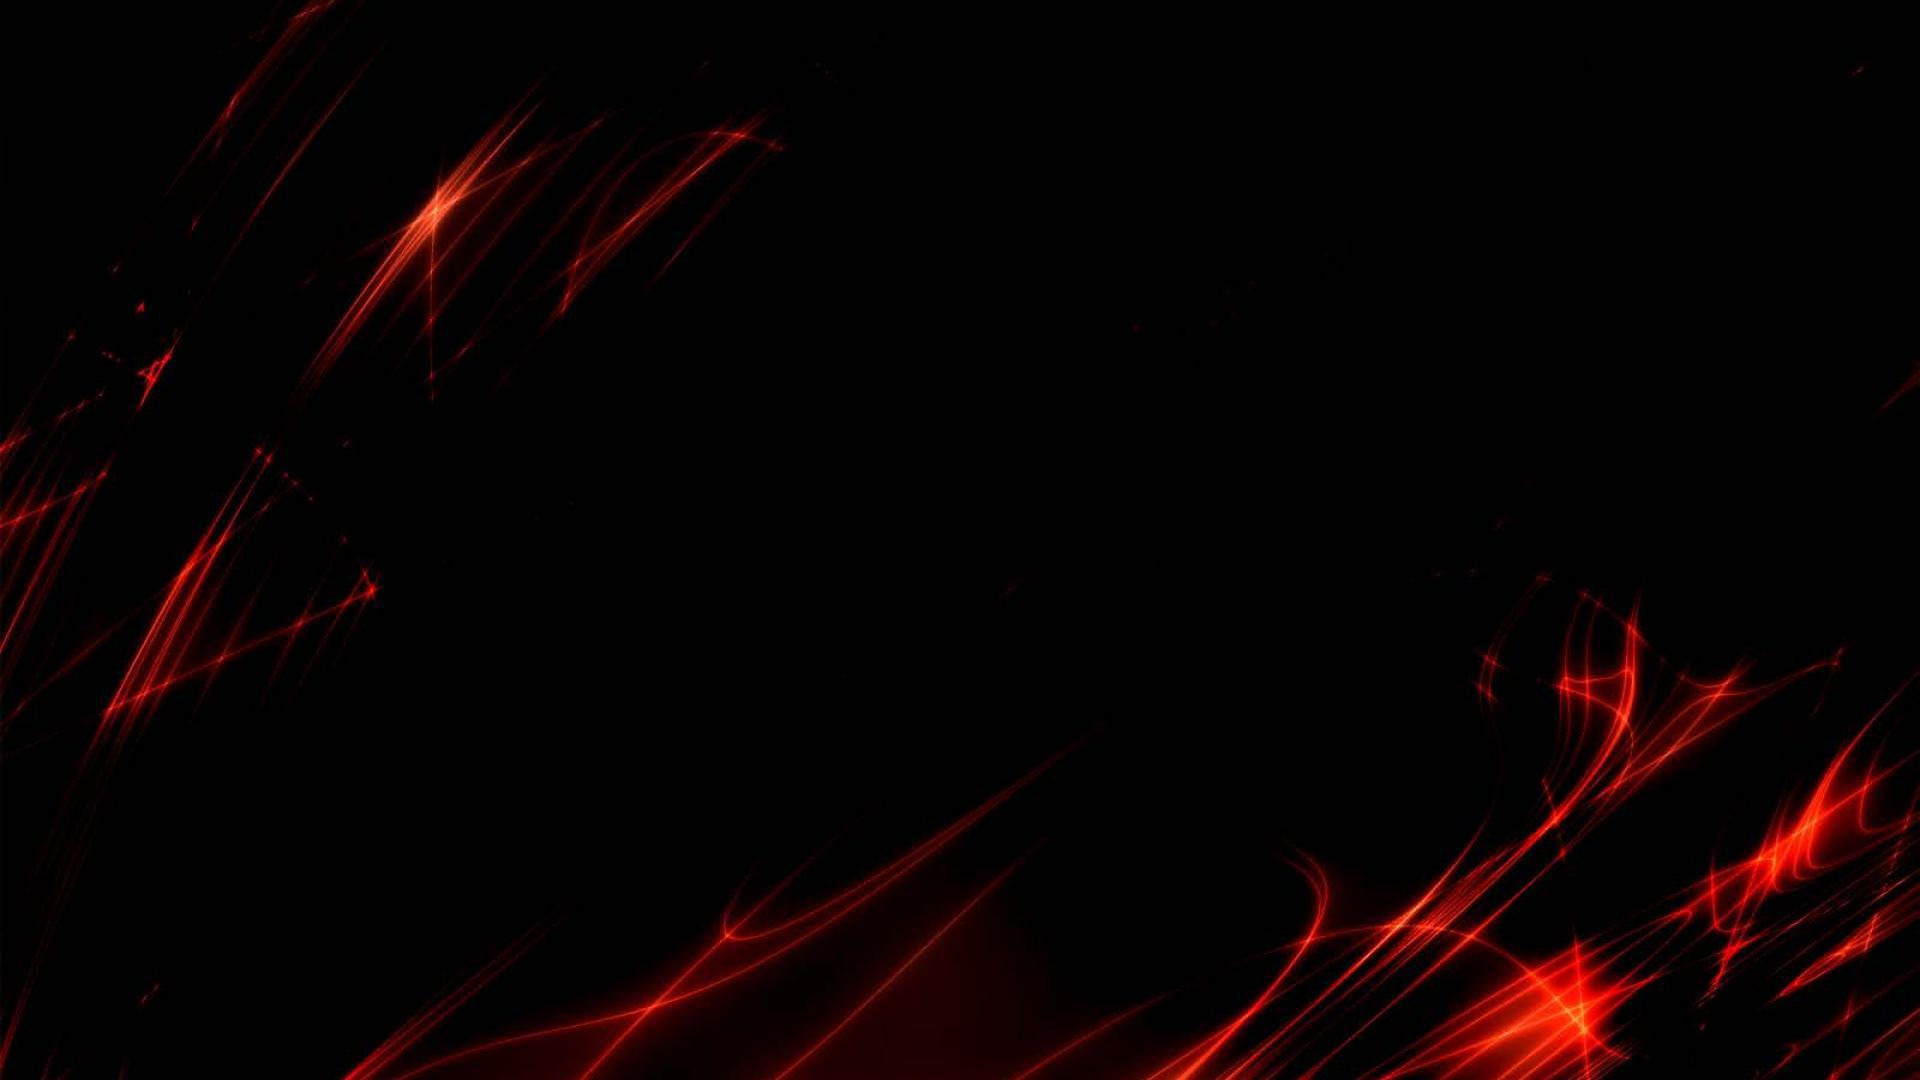 Red And Black Hd Wallpapers Wallpaper Cave